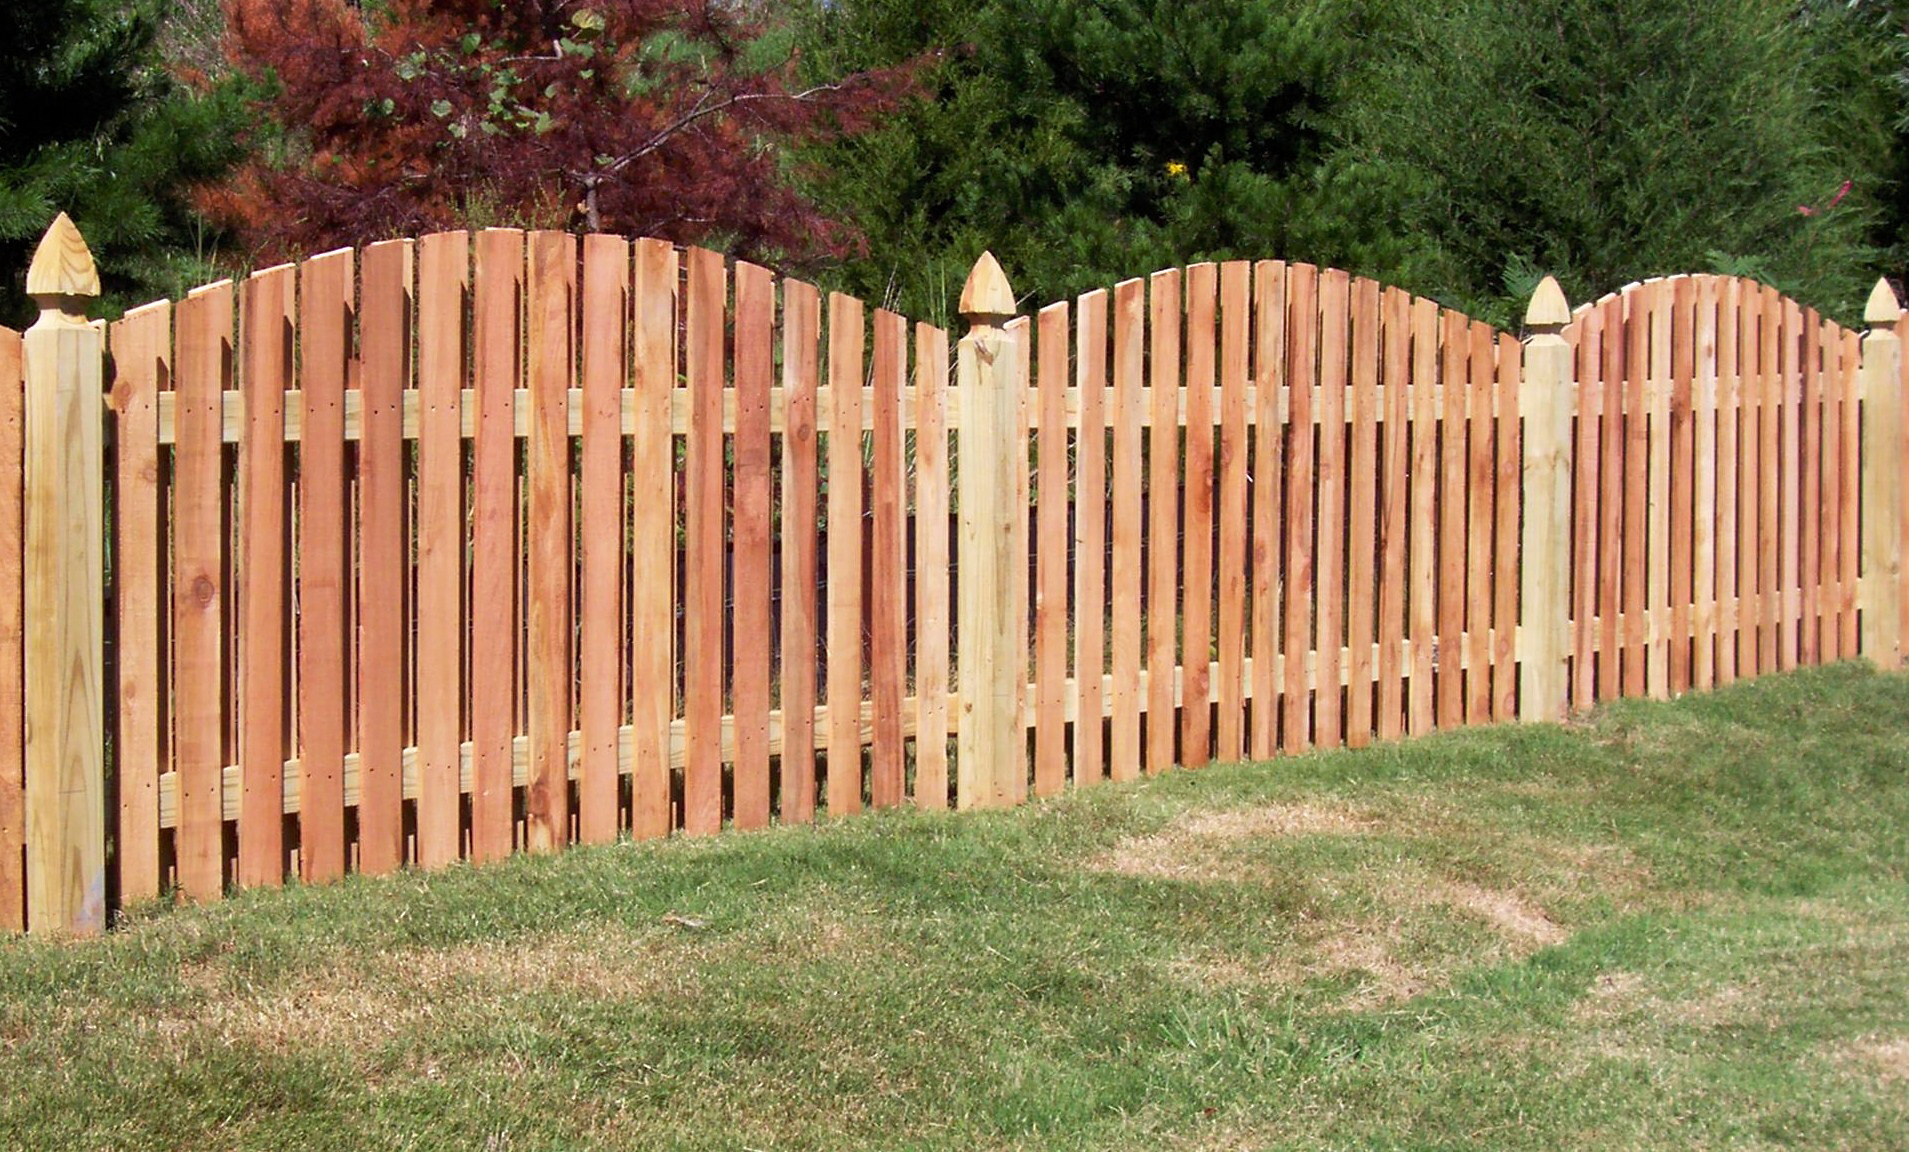 Wood Fences Jmarvinhandyman: wood garden fence designs